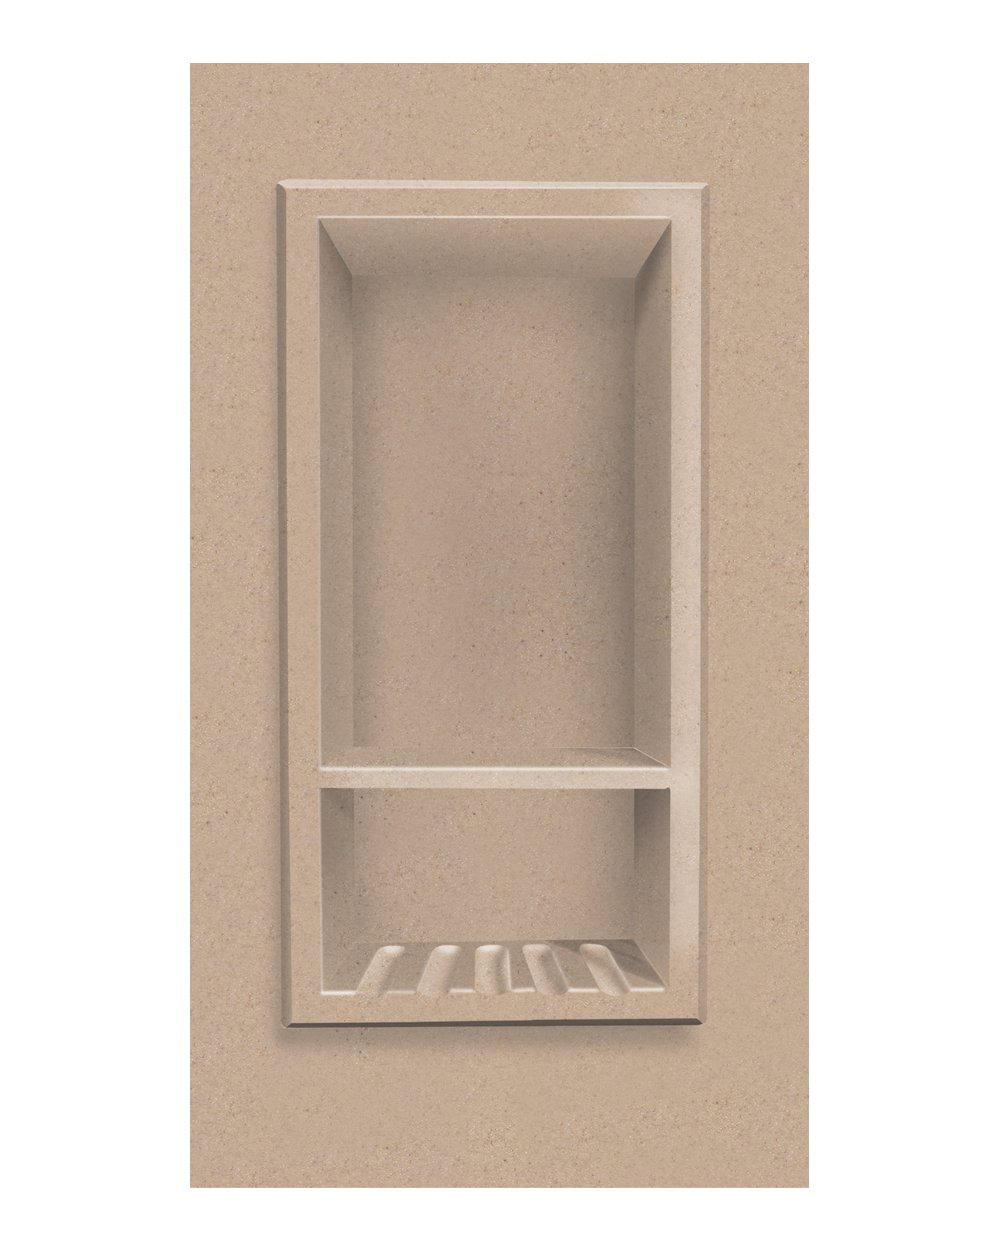 Transolid ACCESS0002-A4 Decor 7-1/2 x 15-Inch Recessed Shampoo Caddy, Sand Castle by Transolid